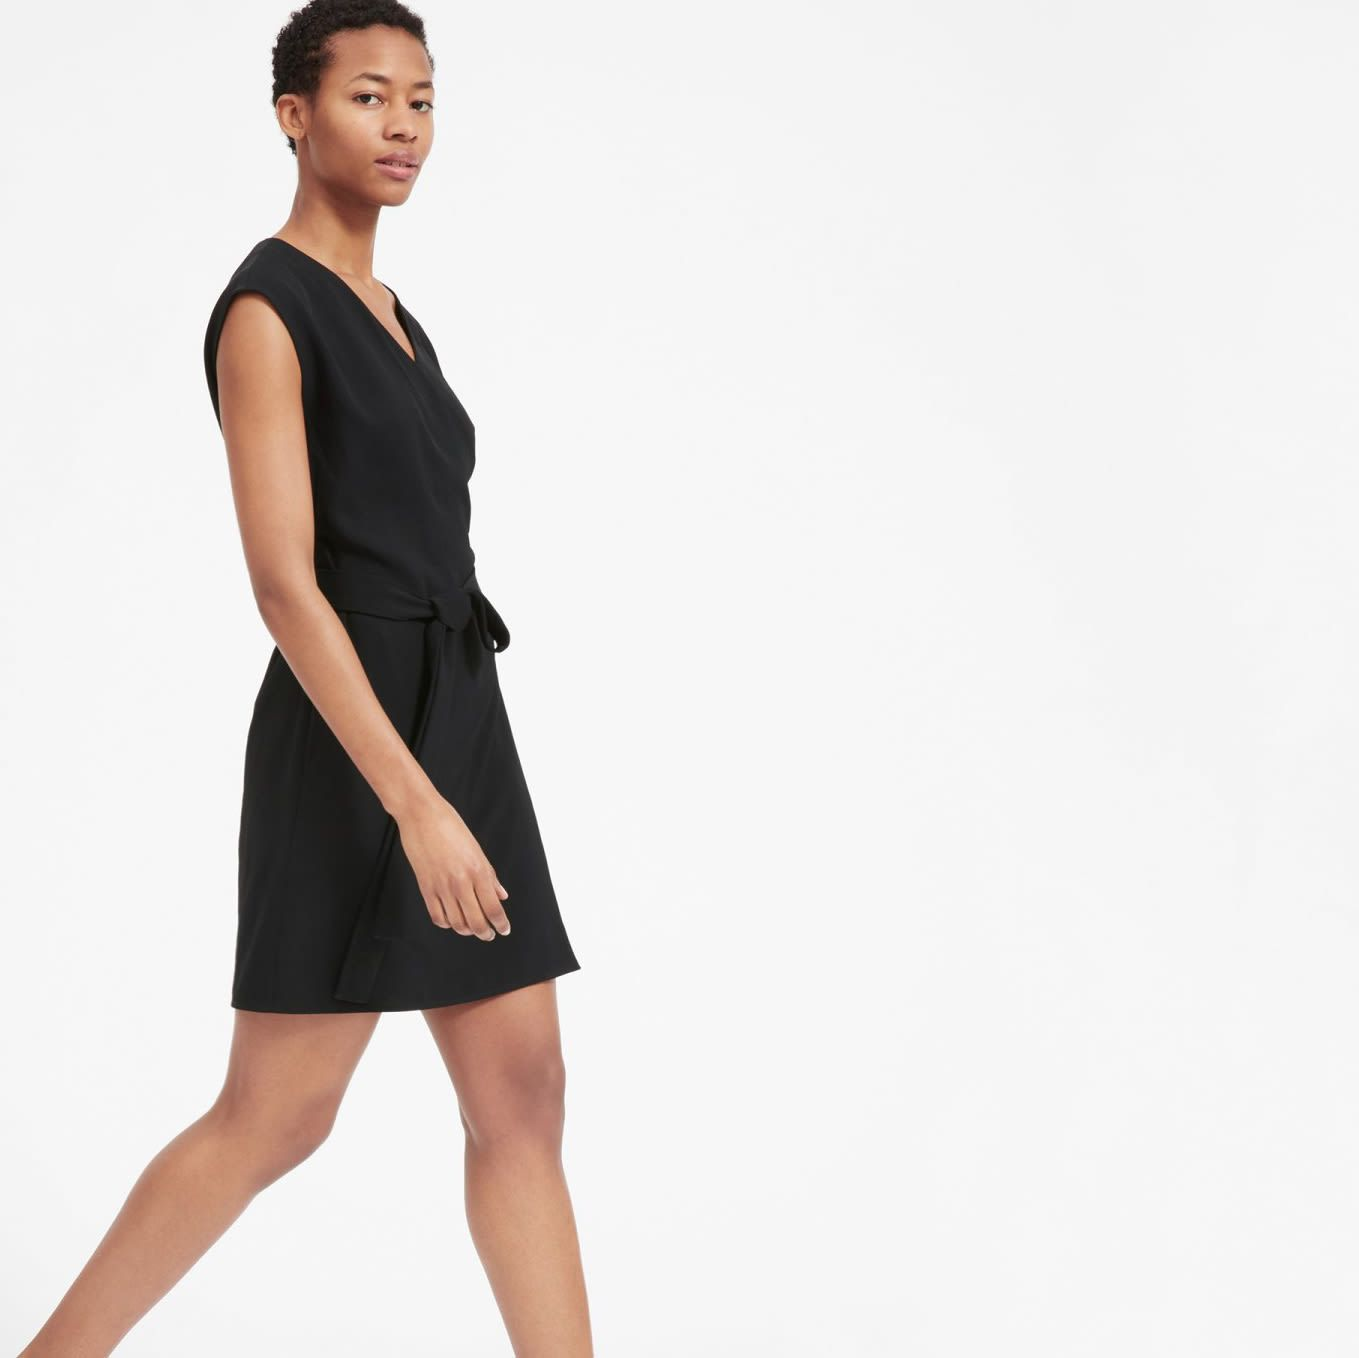 All Wrapped Up A Flattering V Neckline Tie Waist And Versatile Above The Knee Length Make This A Classic Plus Mini Wrap Dress Black Wrap Dress Wrap Dress [ 1358 x 1359 Pixel ]